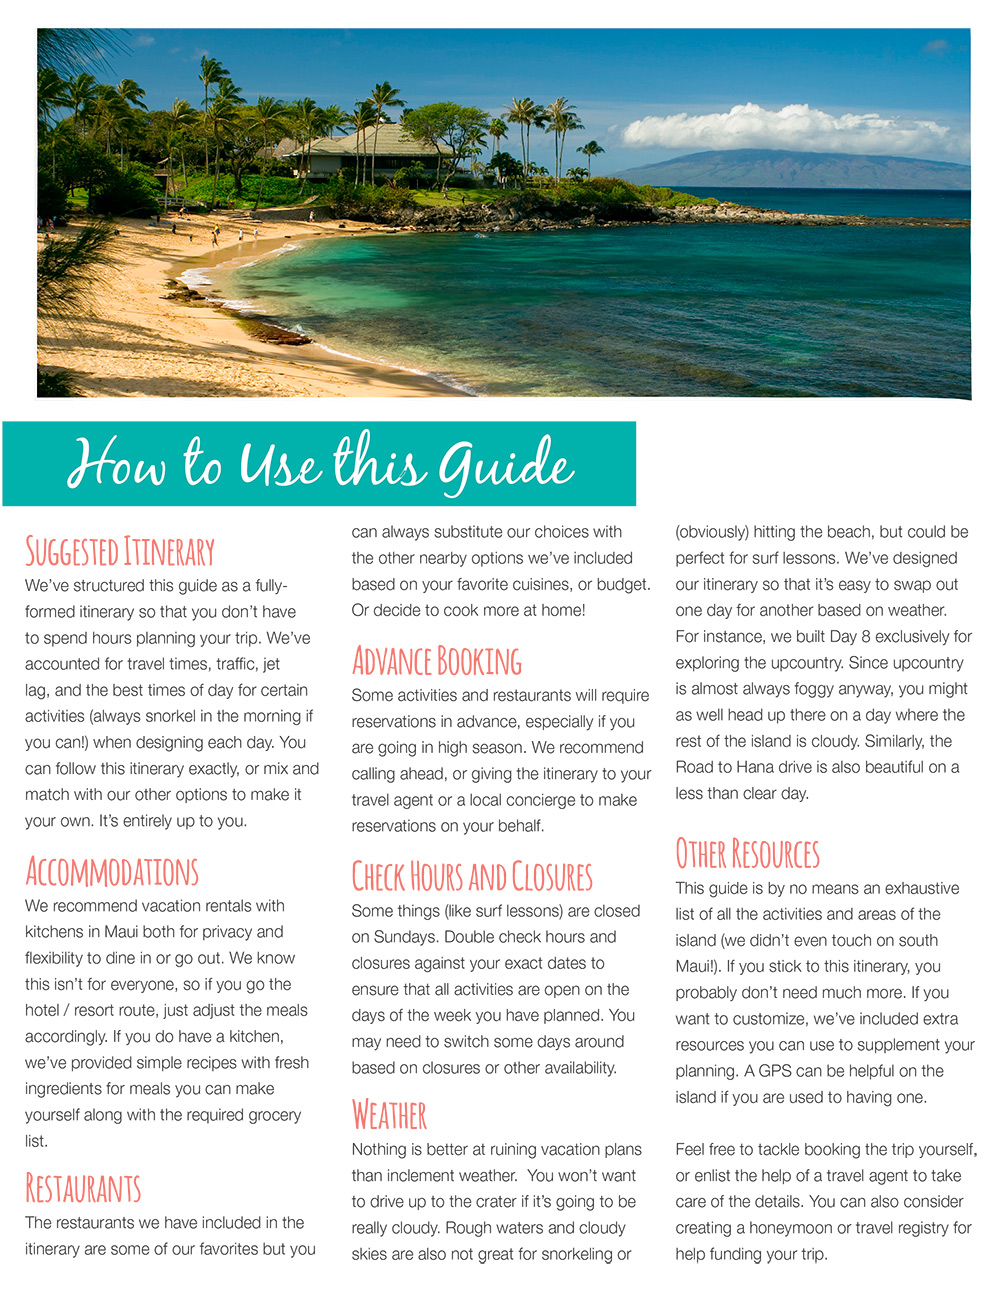 Maui Travel Guide Itinerary How to Use this guide